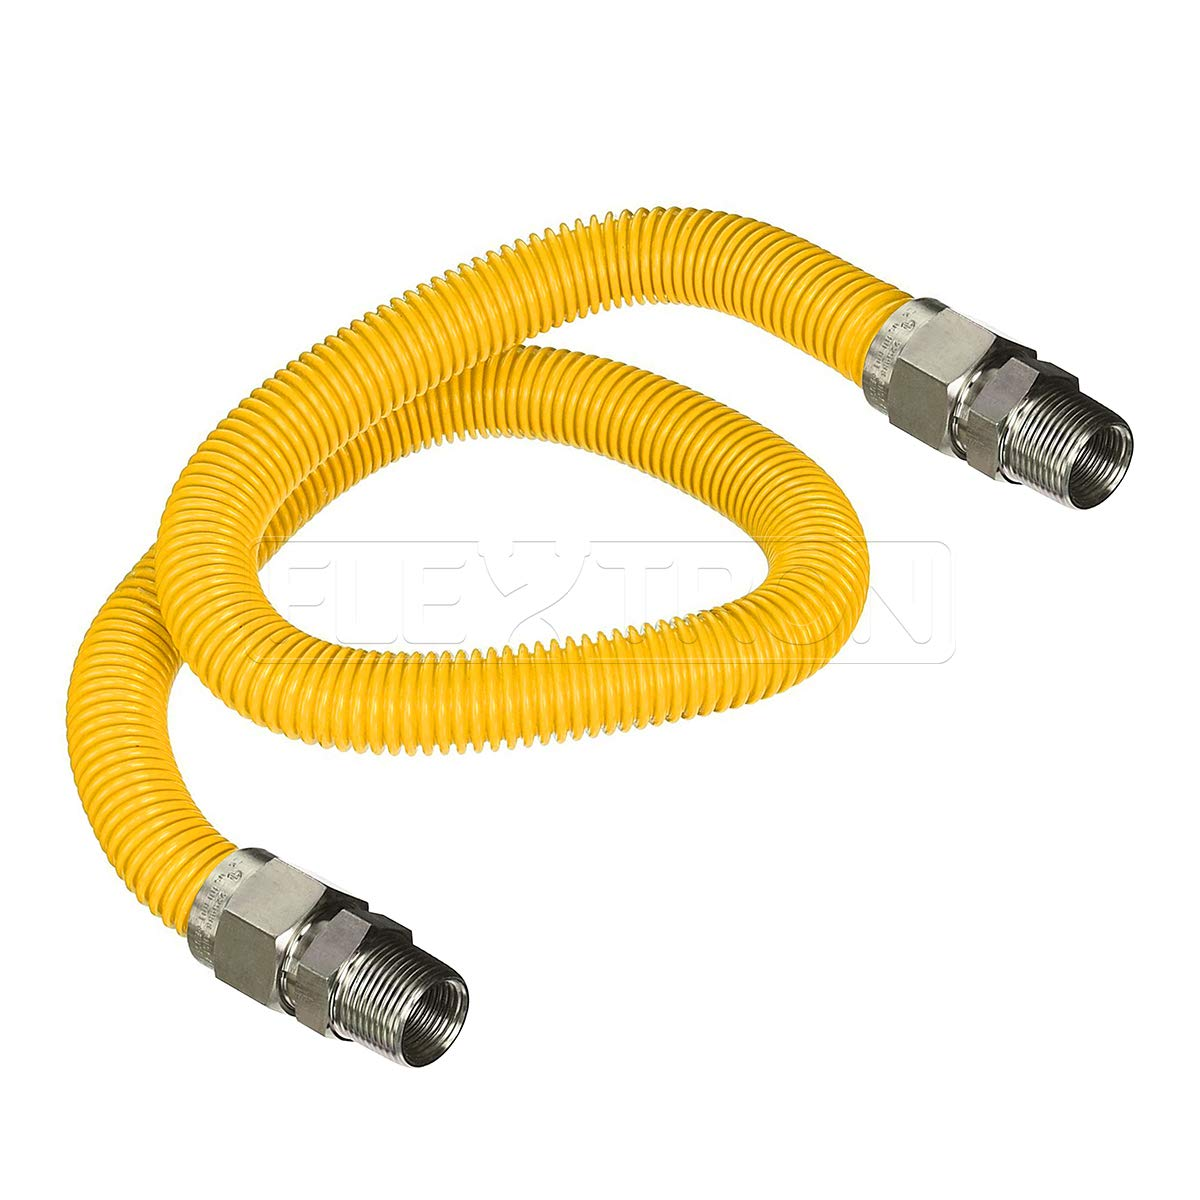 Flextron FTGC-YC38-36A 36 Inch Flexible Epoxy Coated Gas Dryer Connector with 1/2 Inch Outer Diameter & 1/2 Inch MIP x 1/2 Inch MIP Fitting, Yellow/Stainless Steel, Excellent Corrosion Resistance